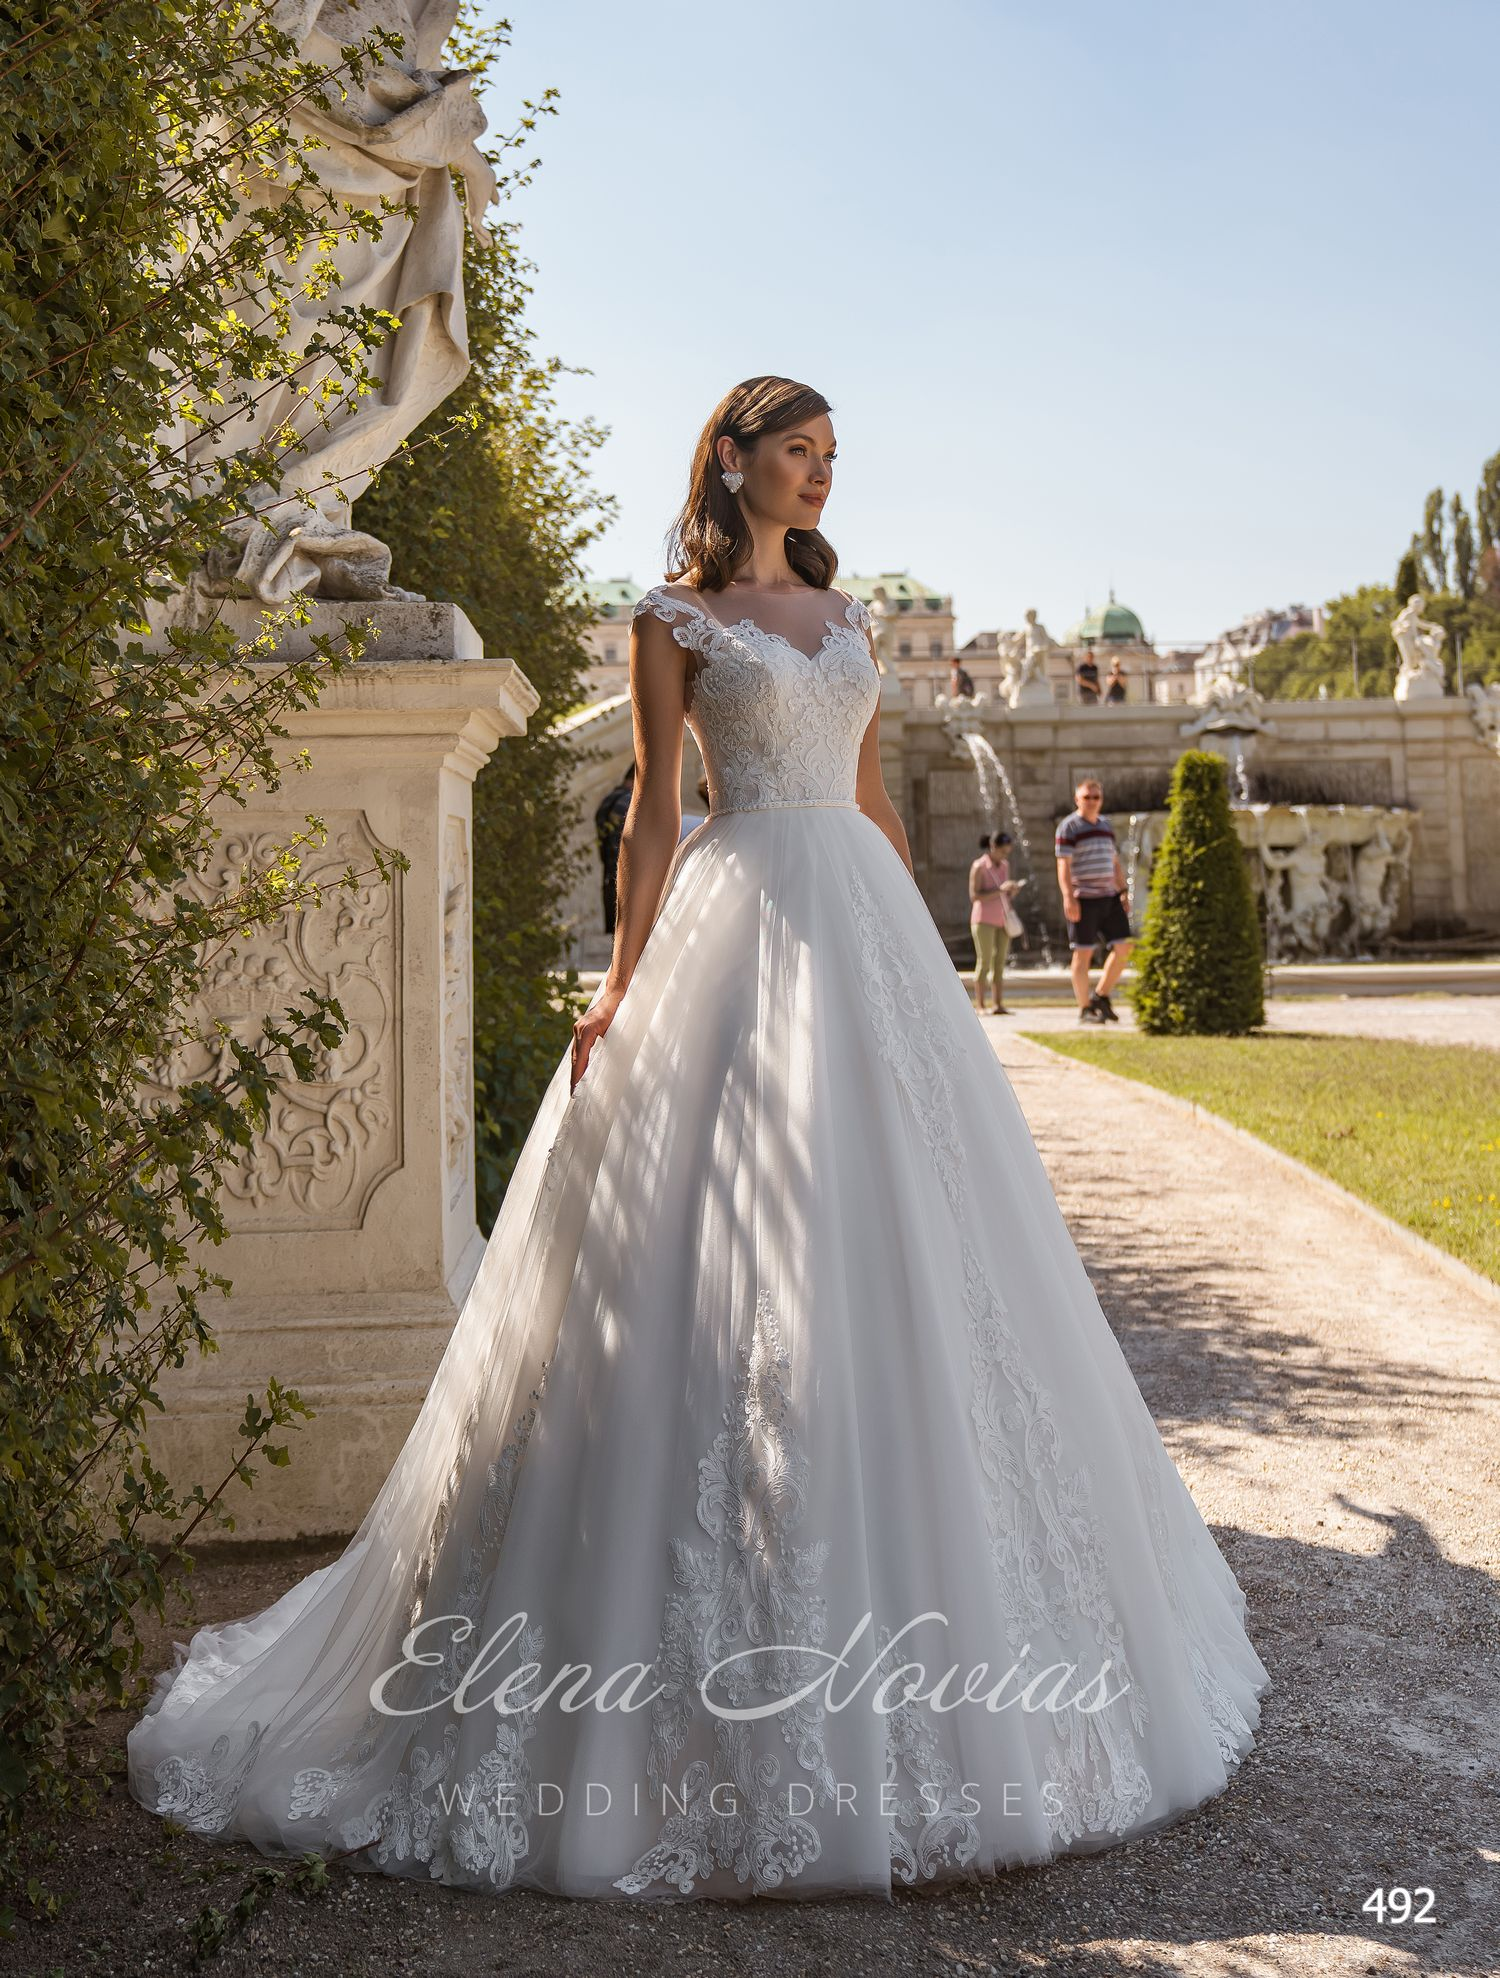 Wedding dresses 492 1